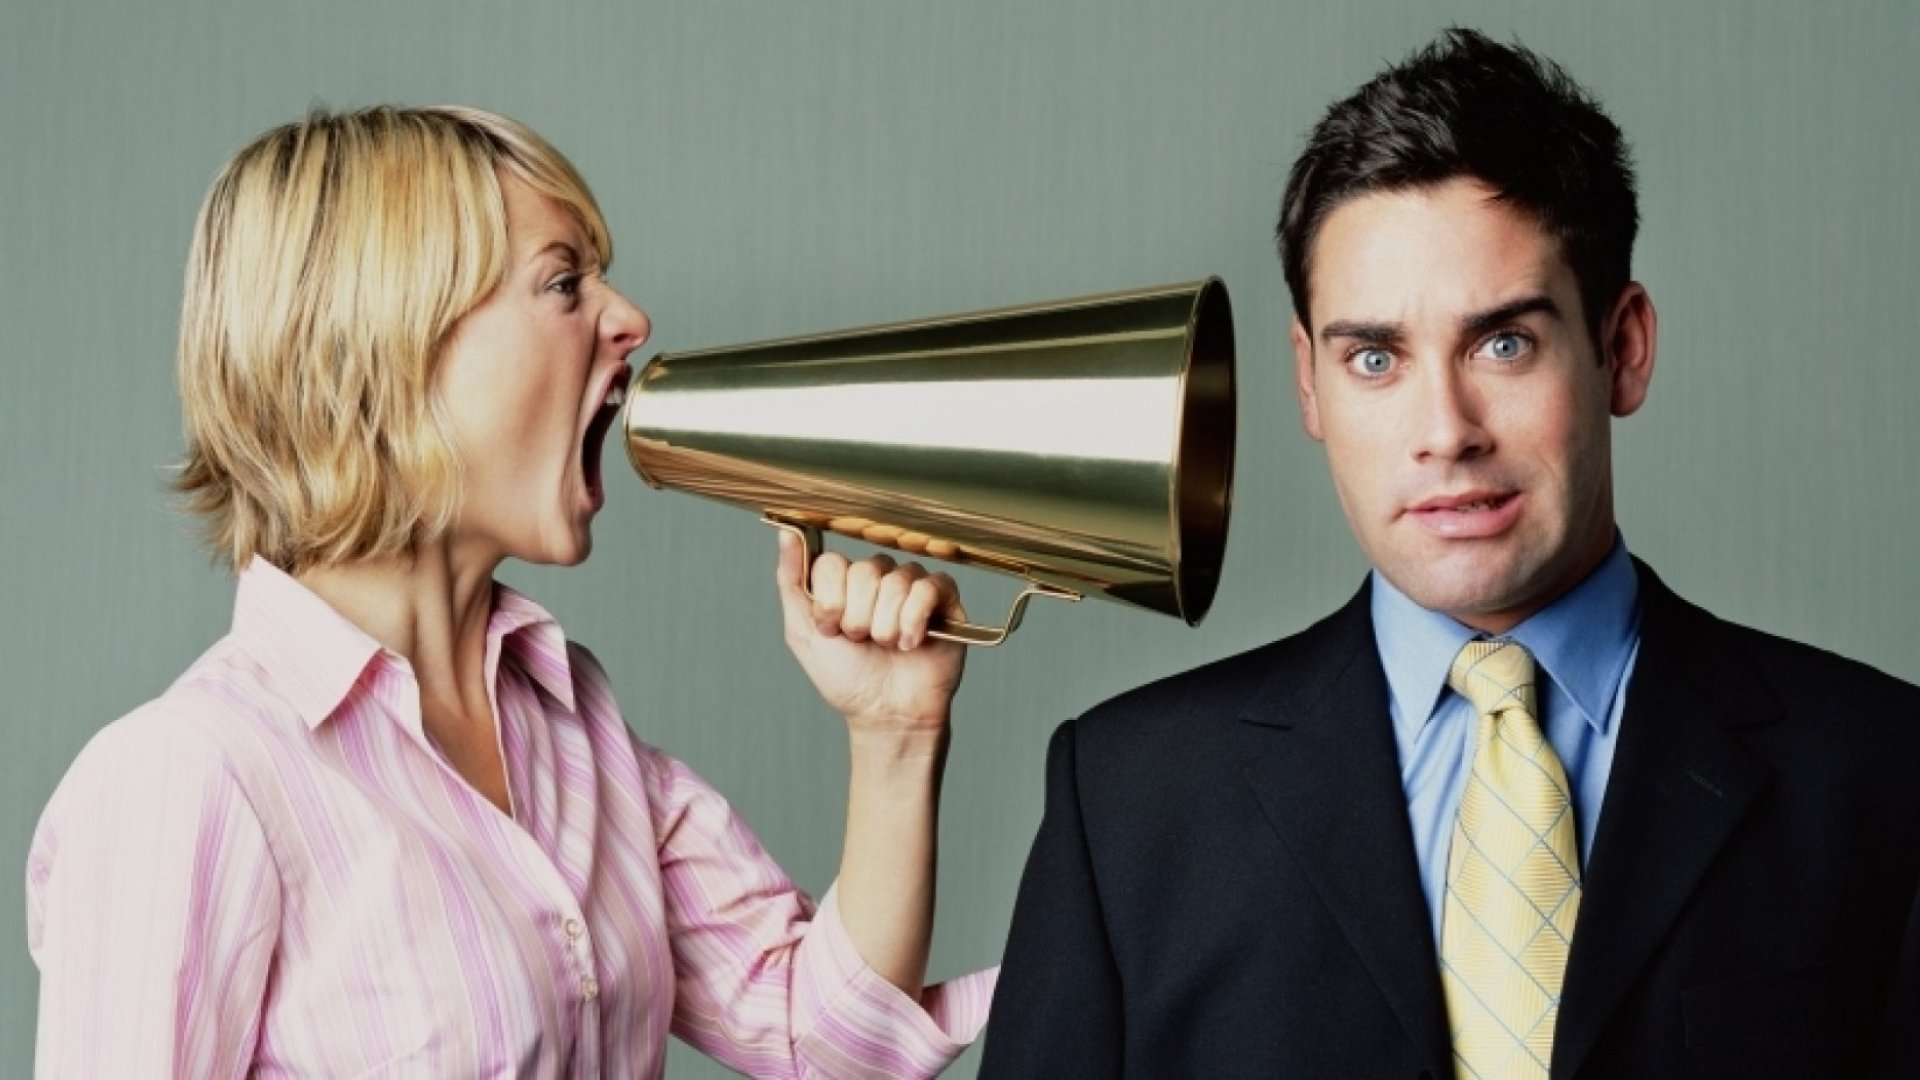 5 Common Mistakes Men Make When They Manage Women